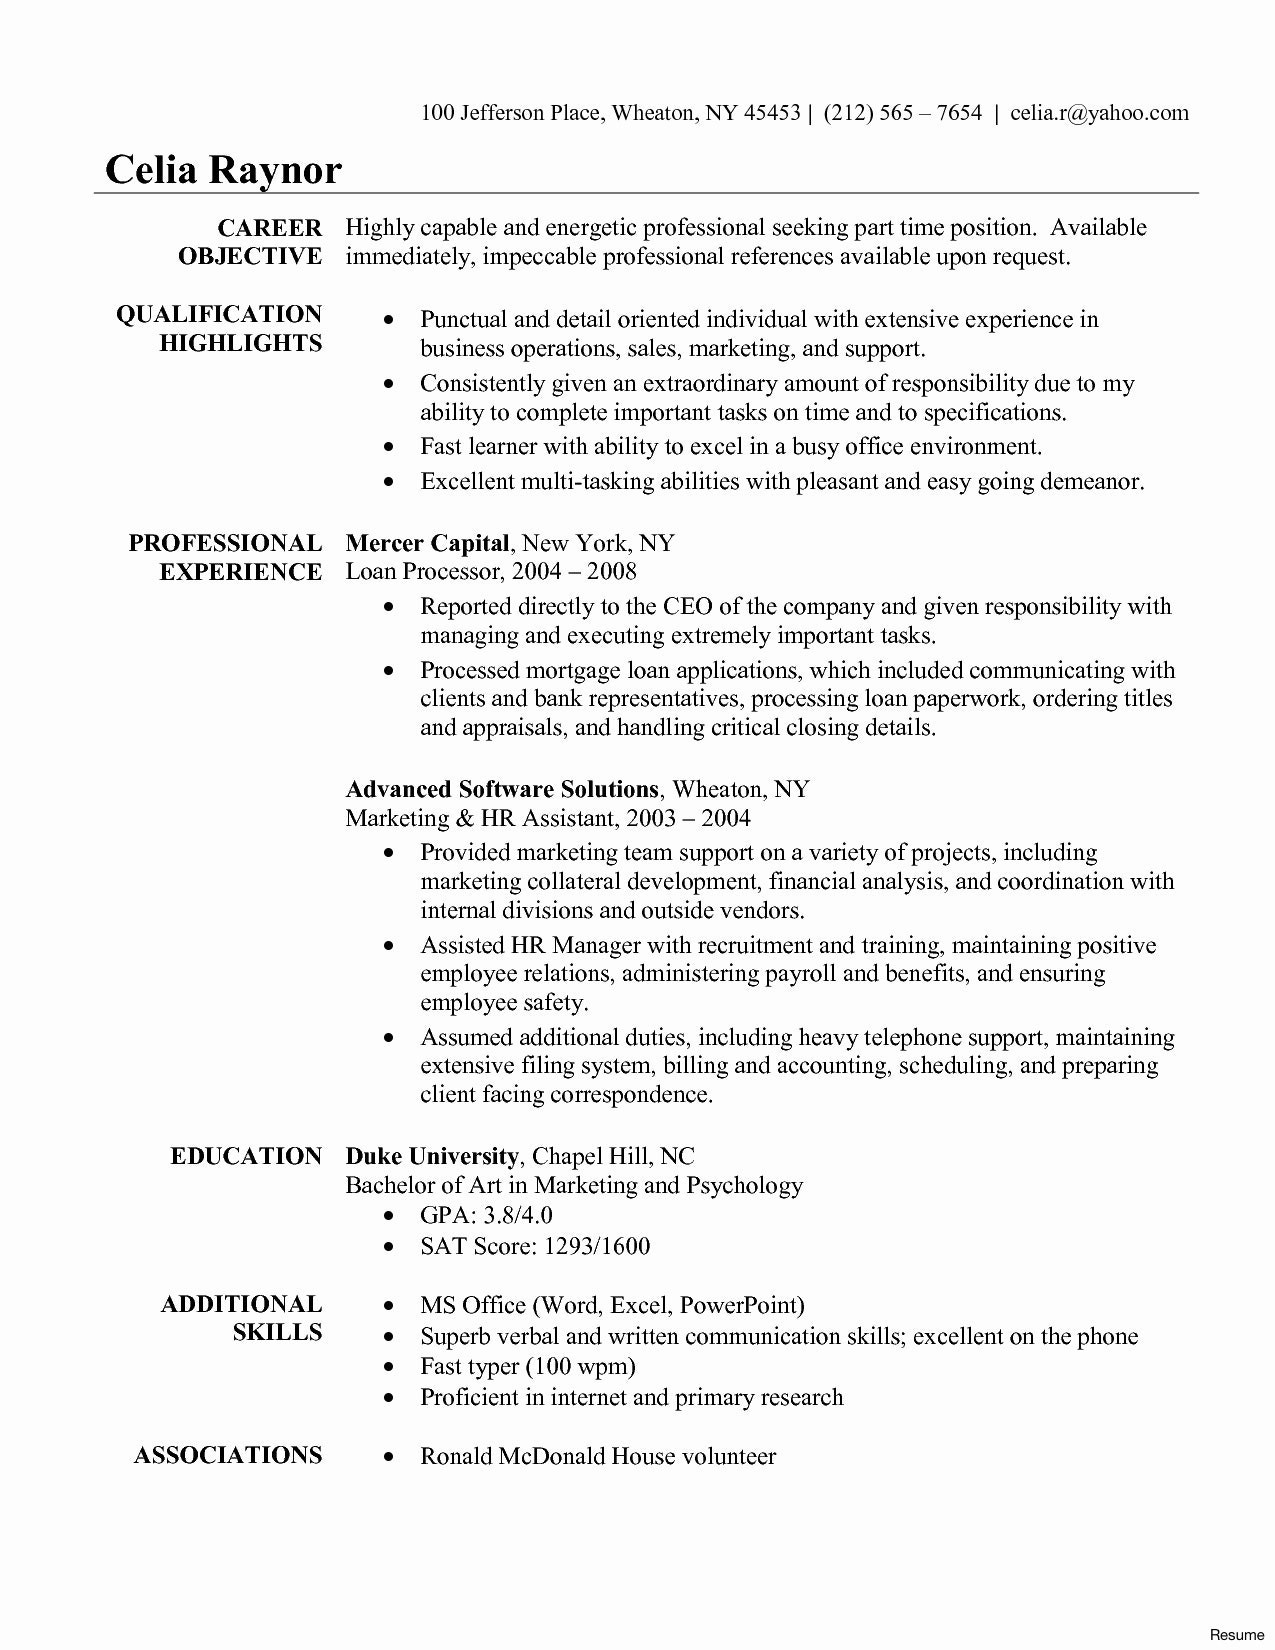 legal resume template example-Individual Development Unique Law Student Resume Template Best Resume Examples 0d 17-c